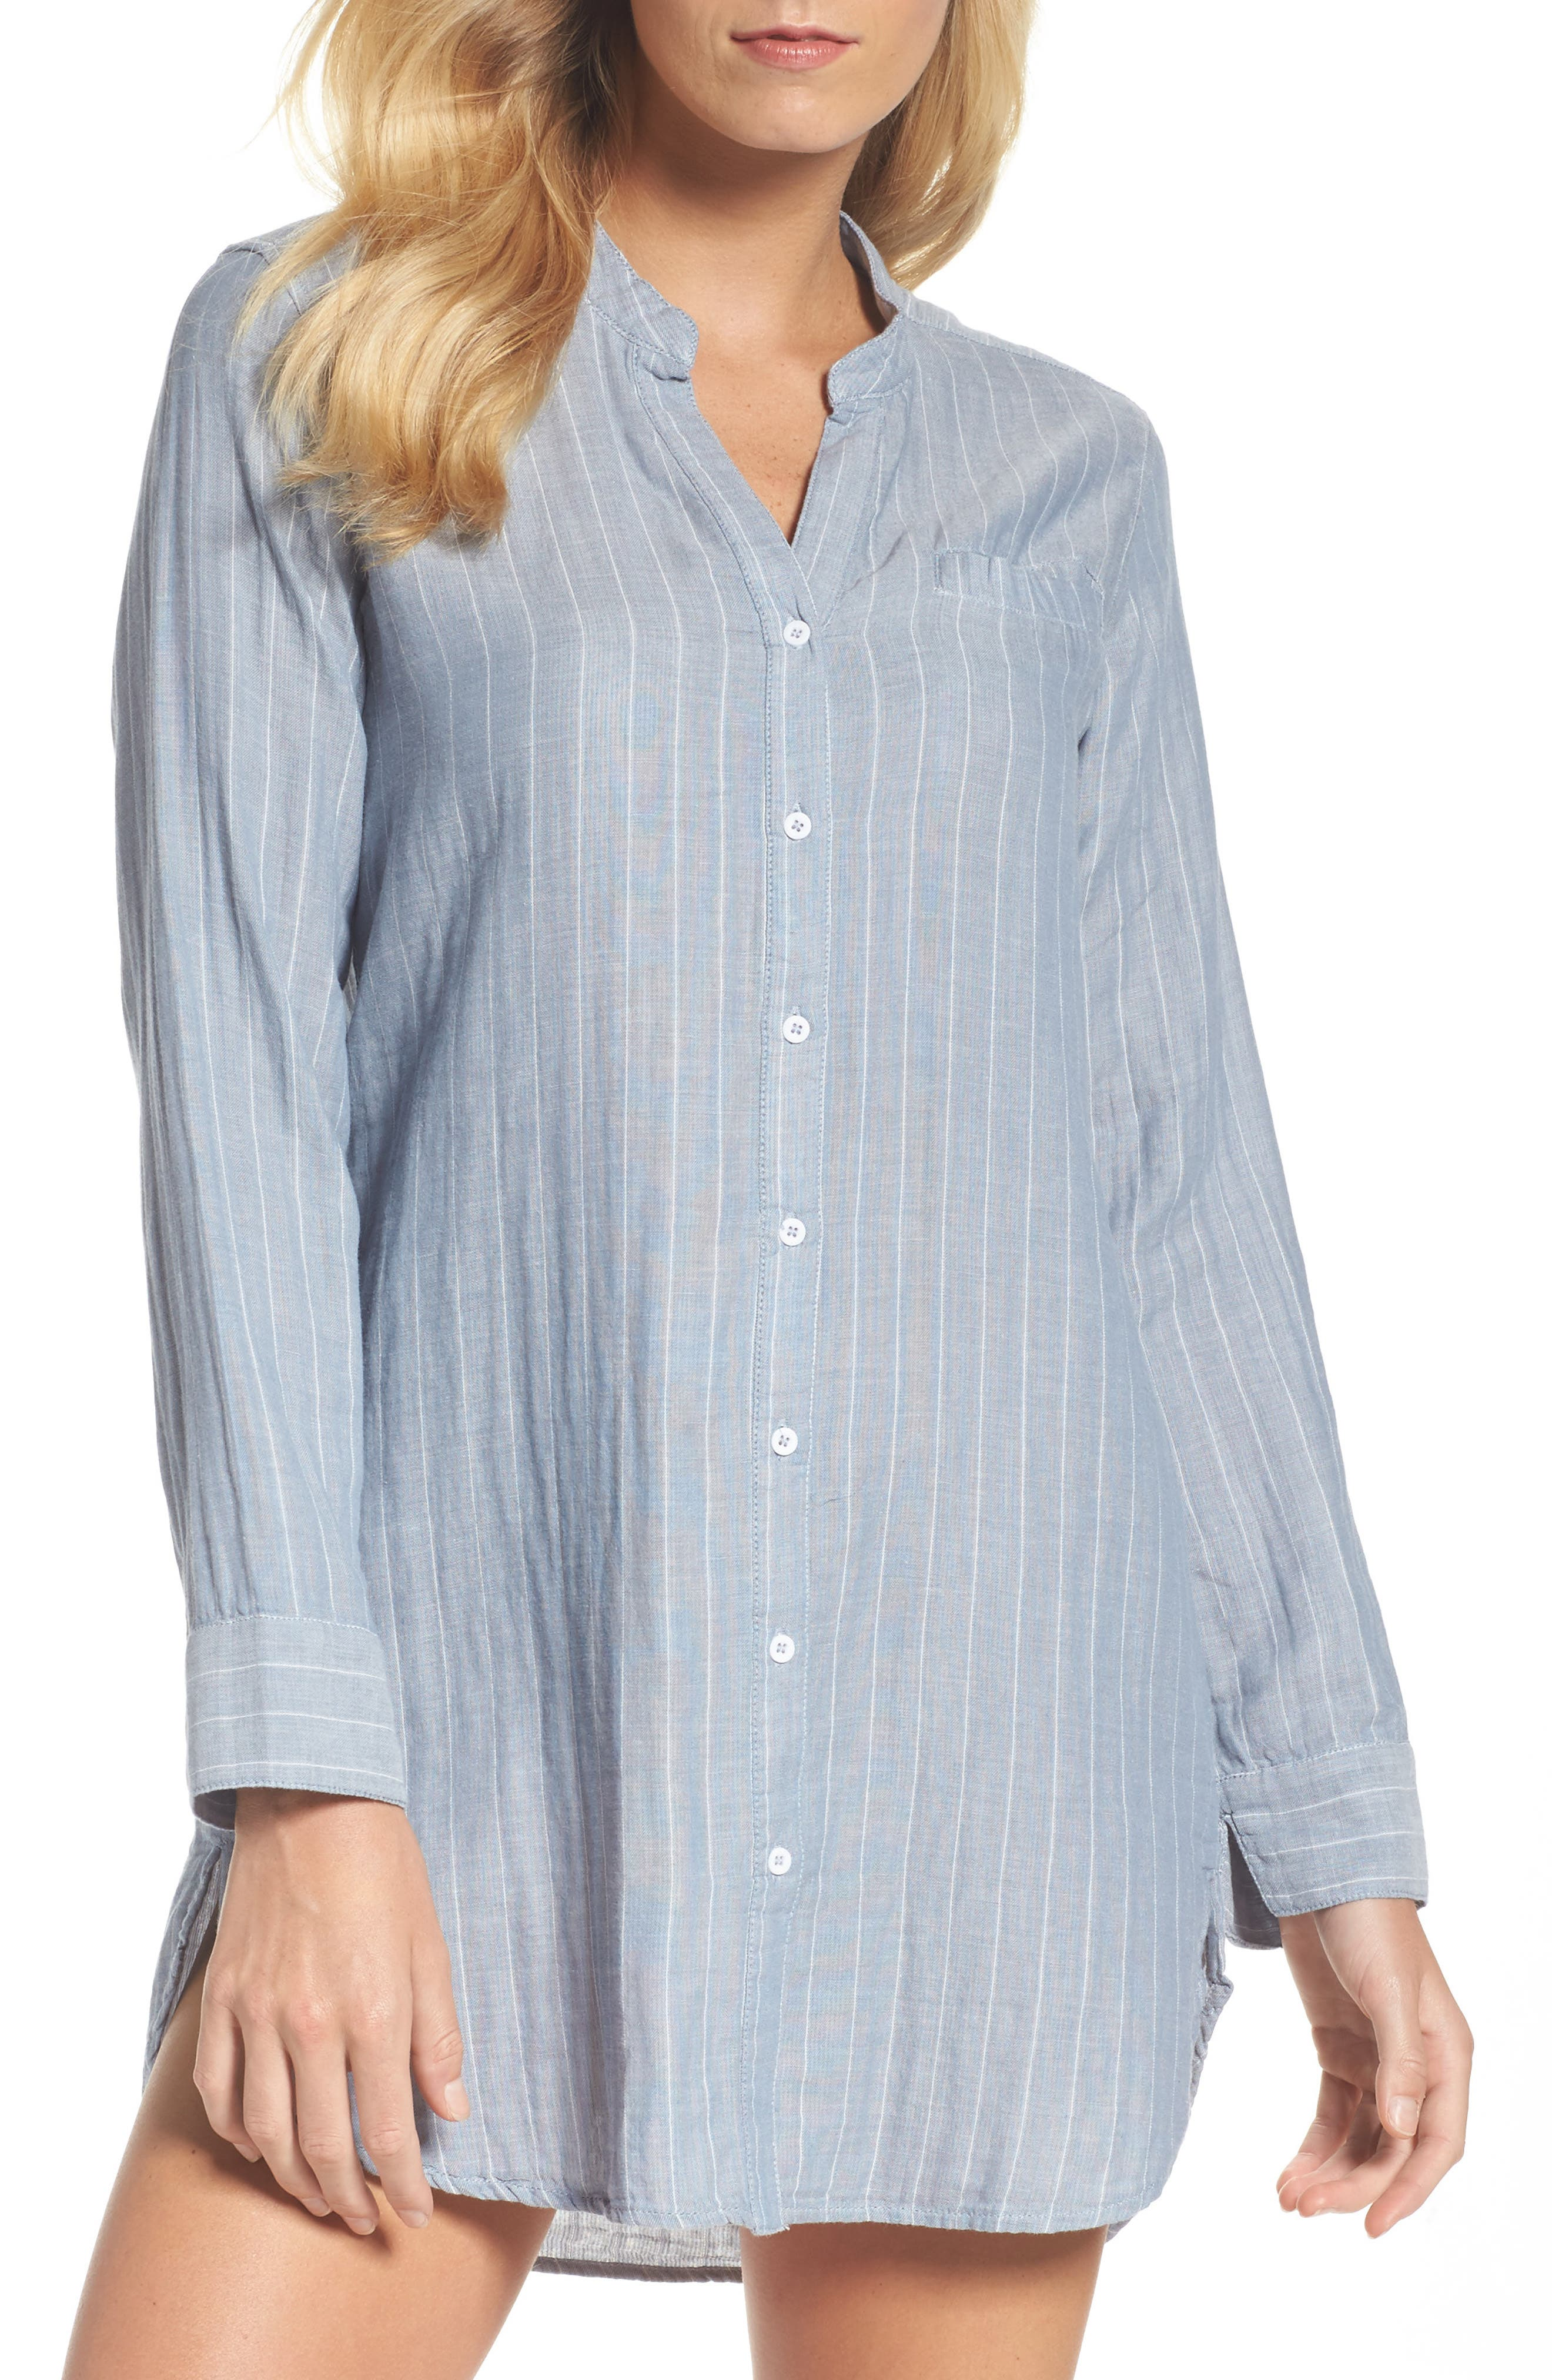 UGG Vivian Stripe Sleep Shirt,                         Main,                         color, 400